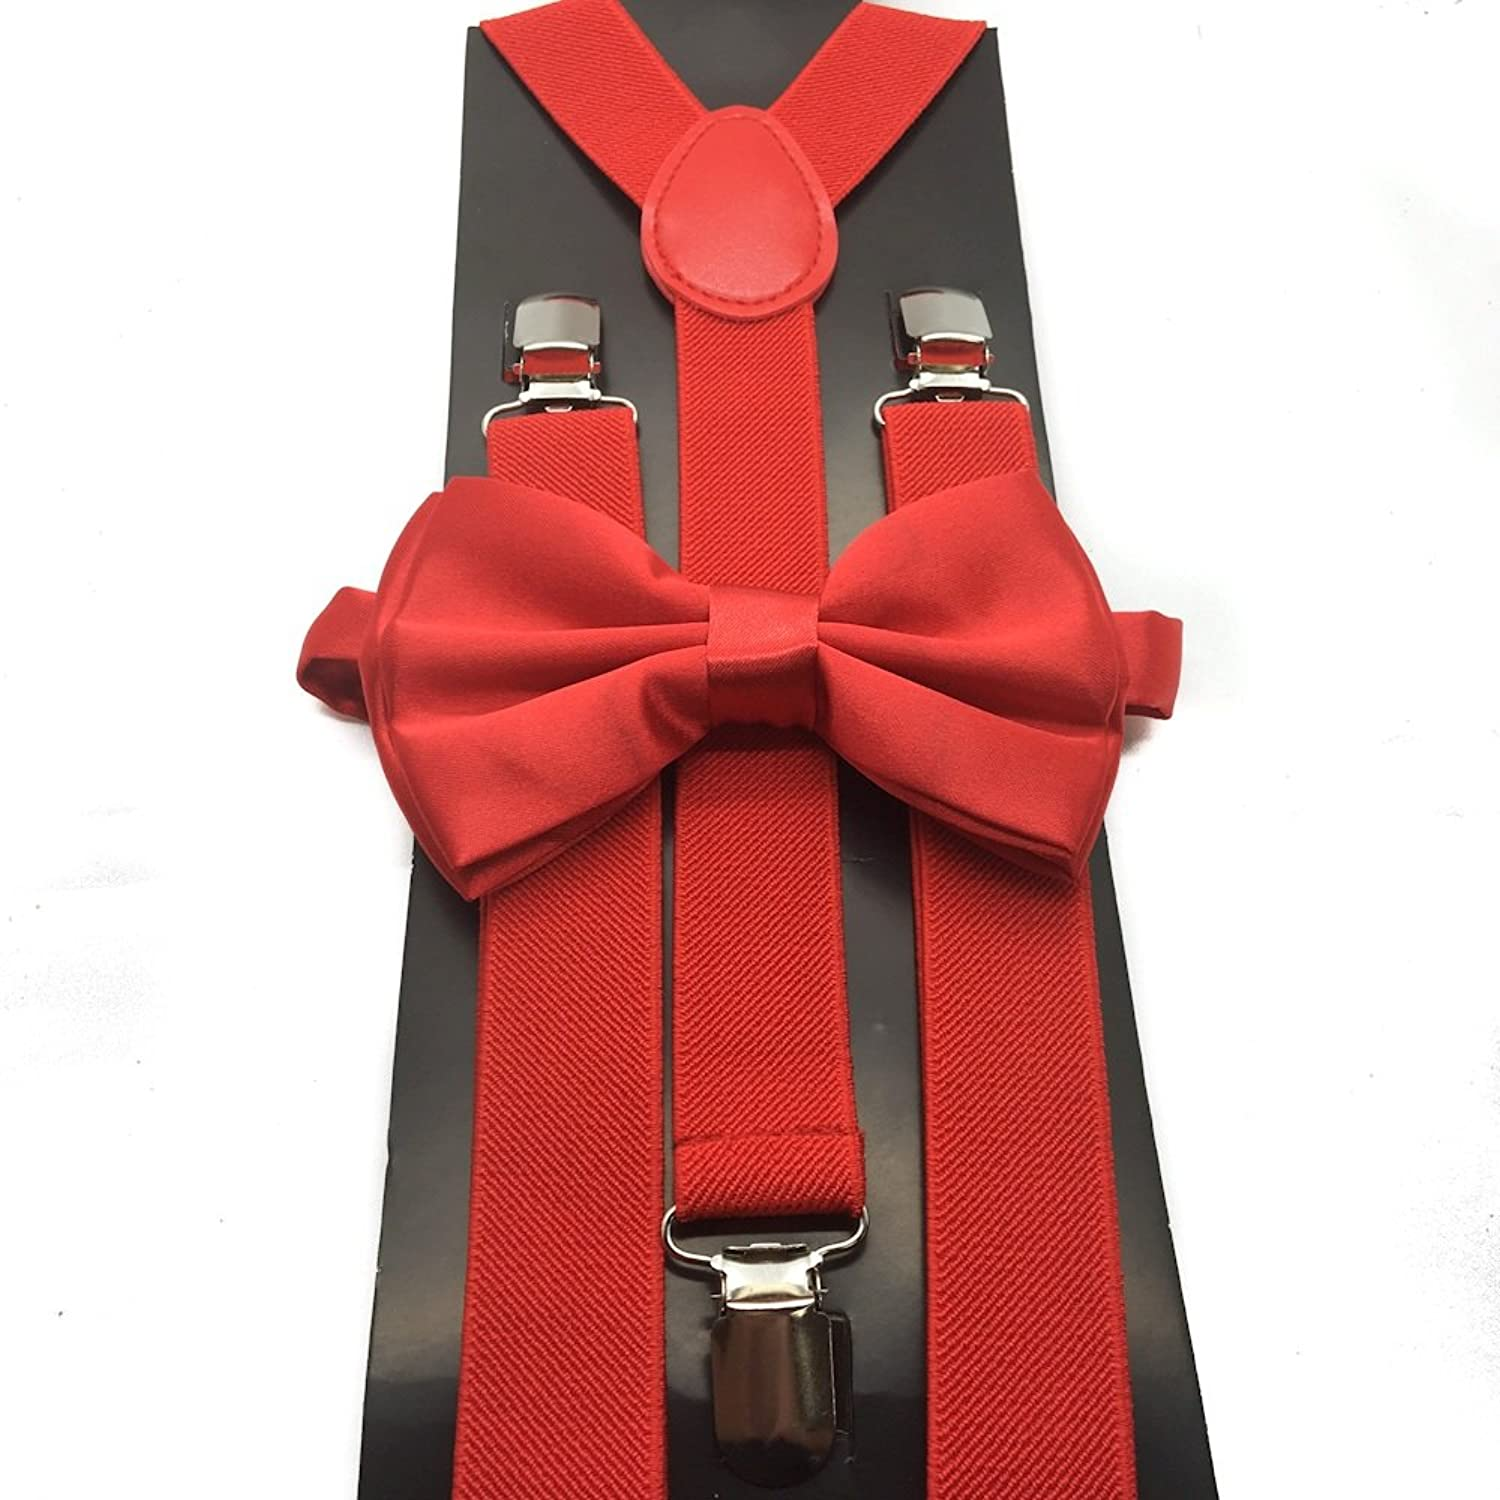 4everStore Unisex Bow Tie & Suspender Sets, Red